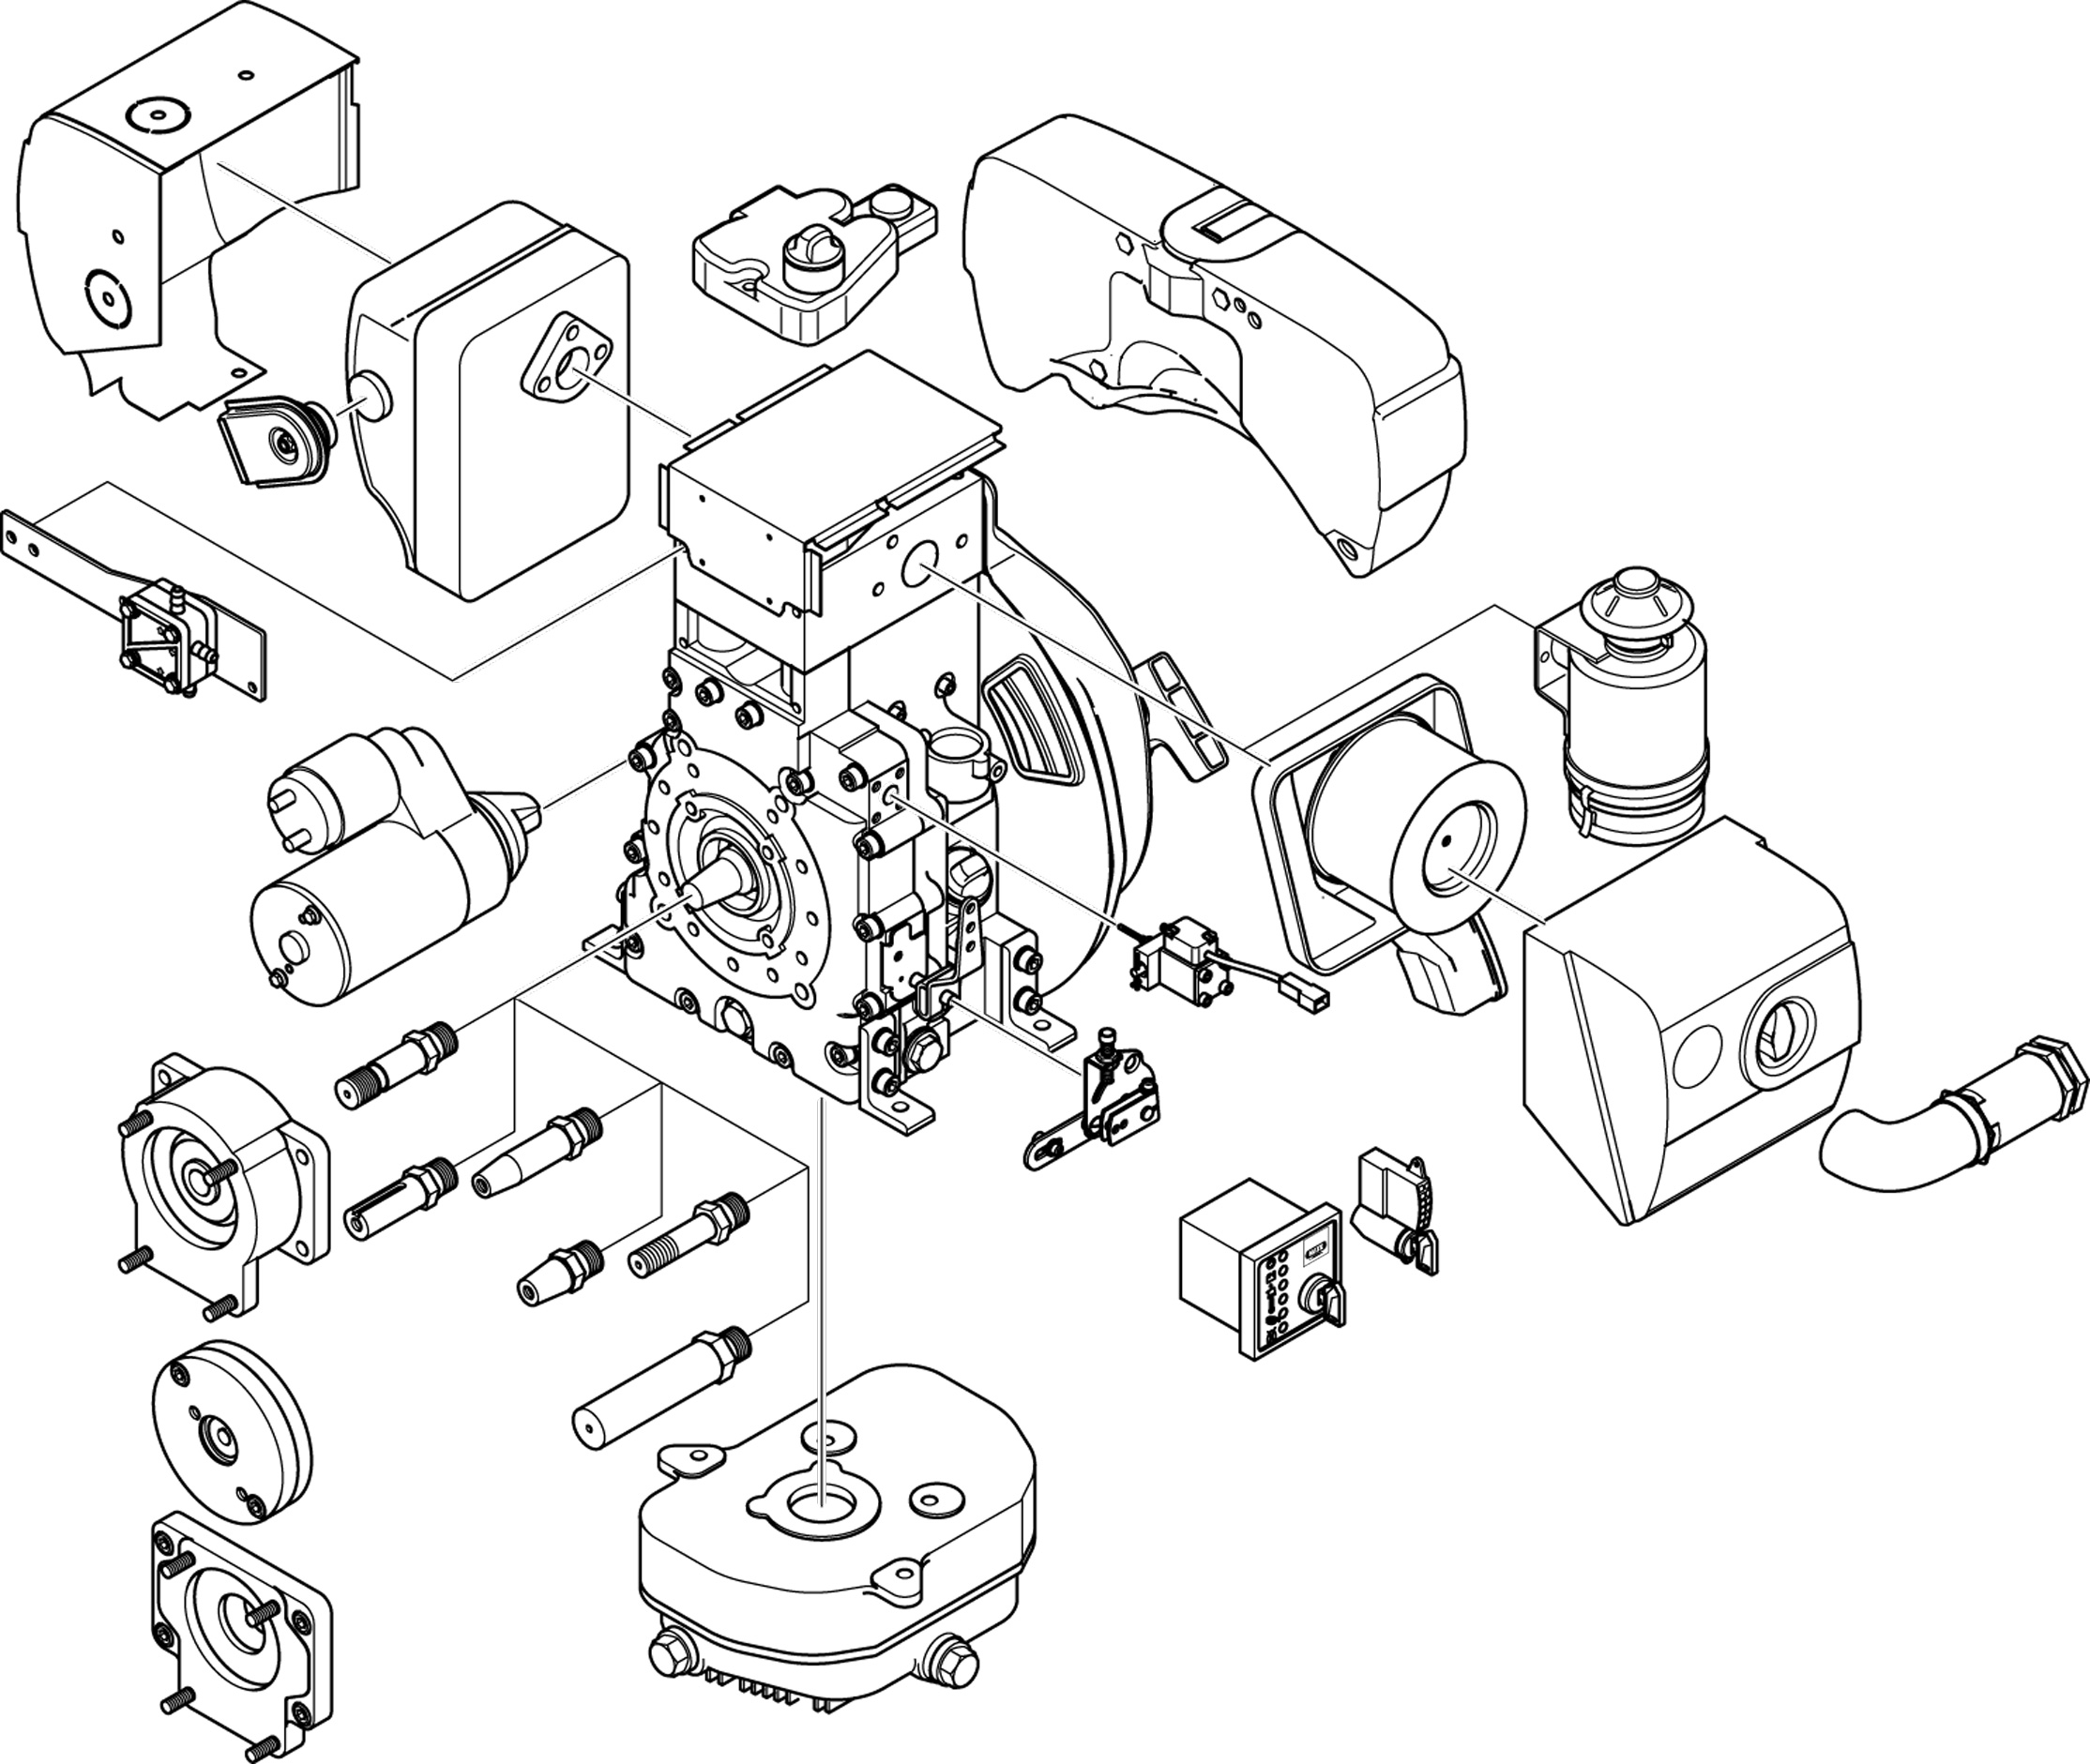 B Series Small Diesel Engine Single Cylinder Hatz 2000 Dodge Ram 2500 Cummins Fuse Box Diagram Features